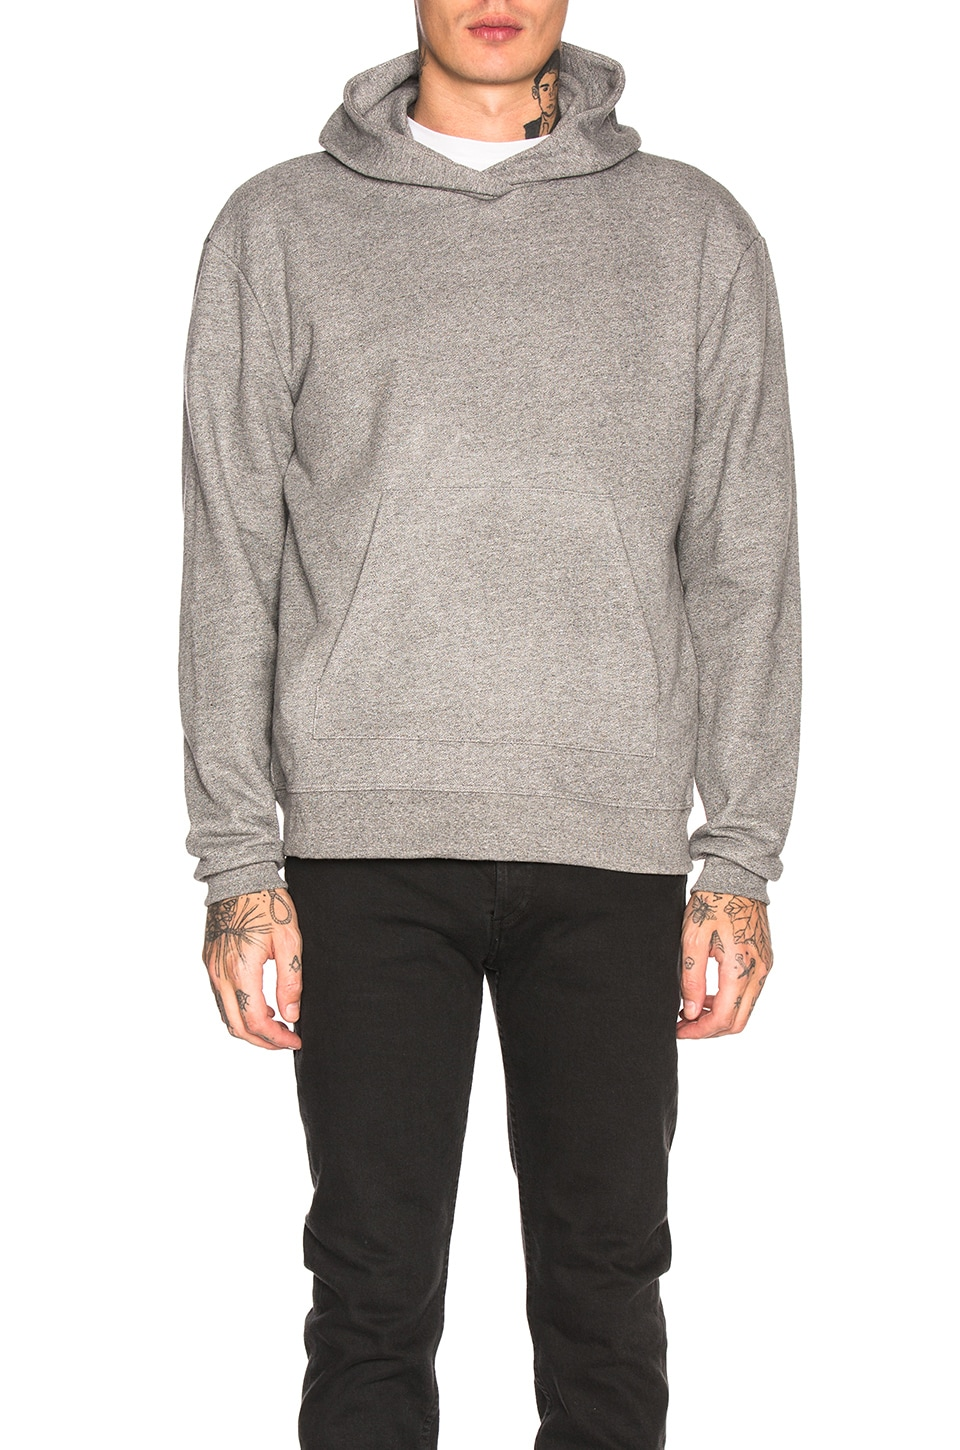 JOHN ELLIOTT Oversized Crewneck Hoodie in Dark Grey